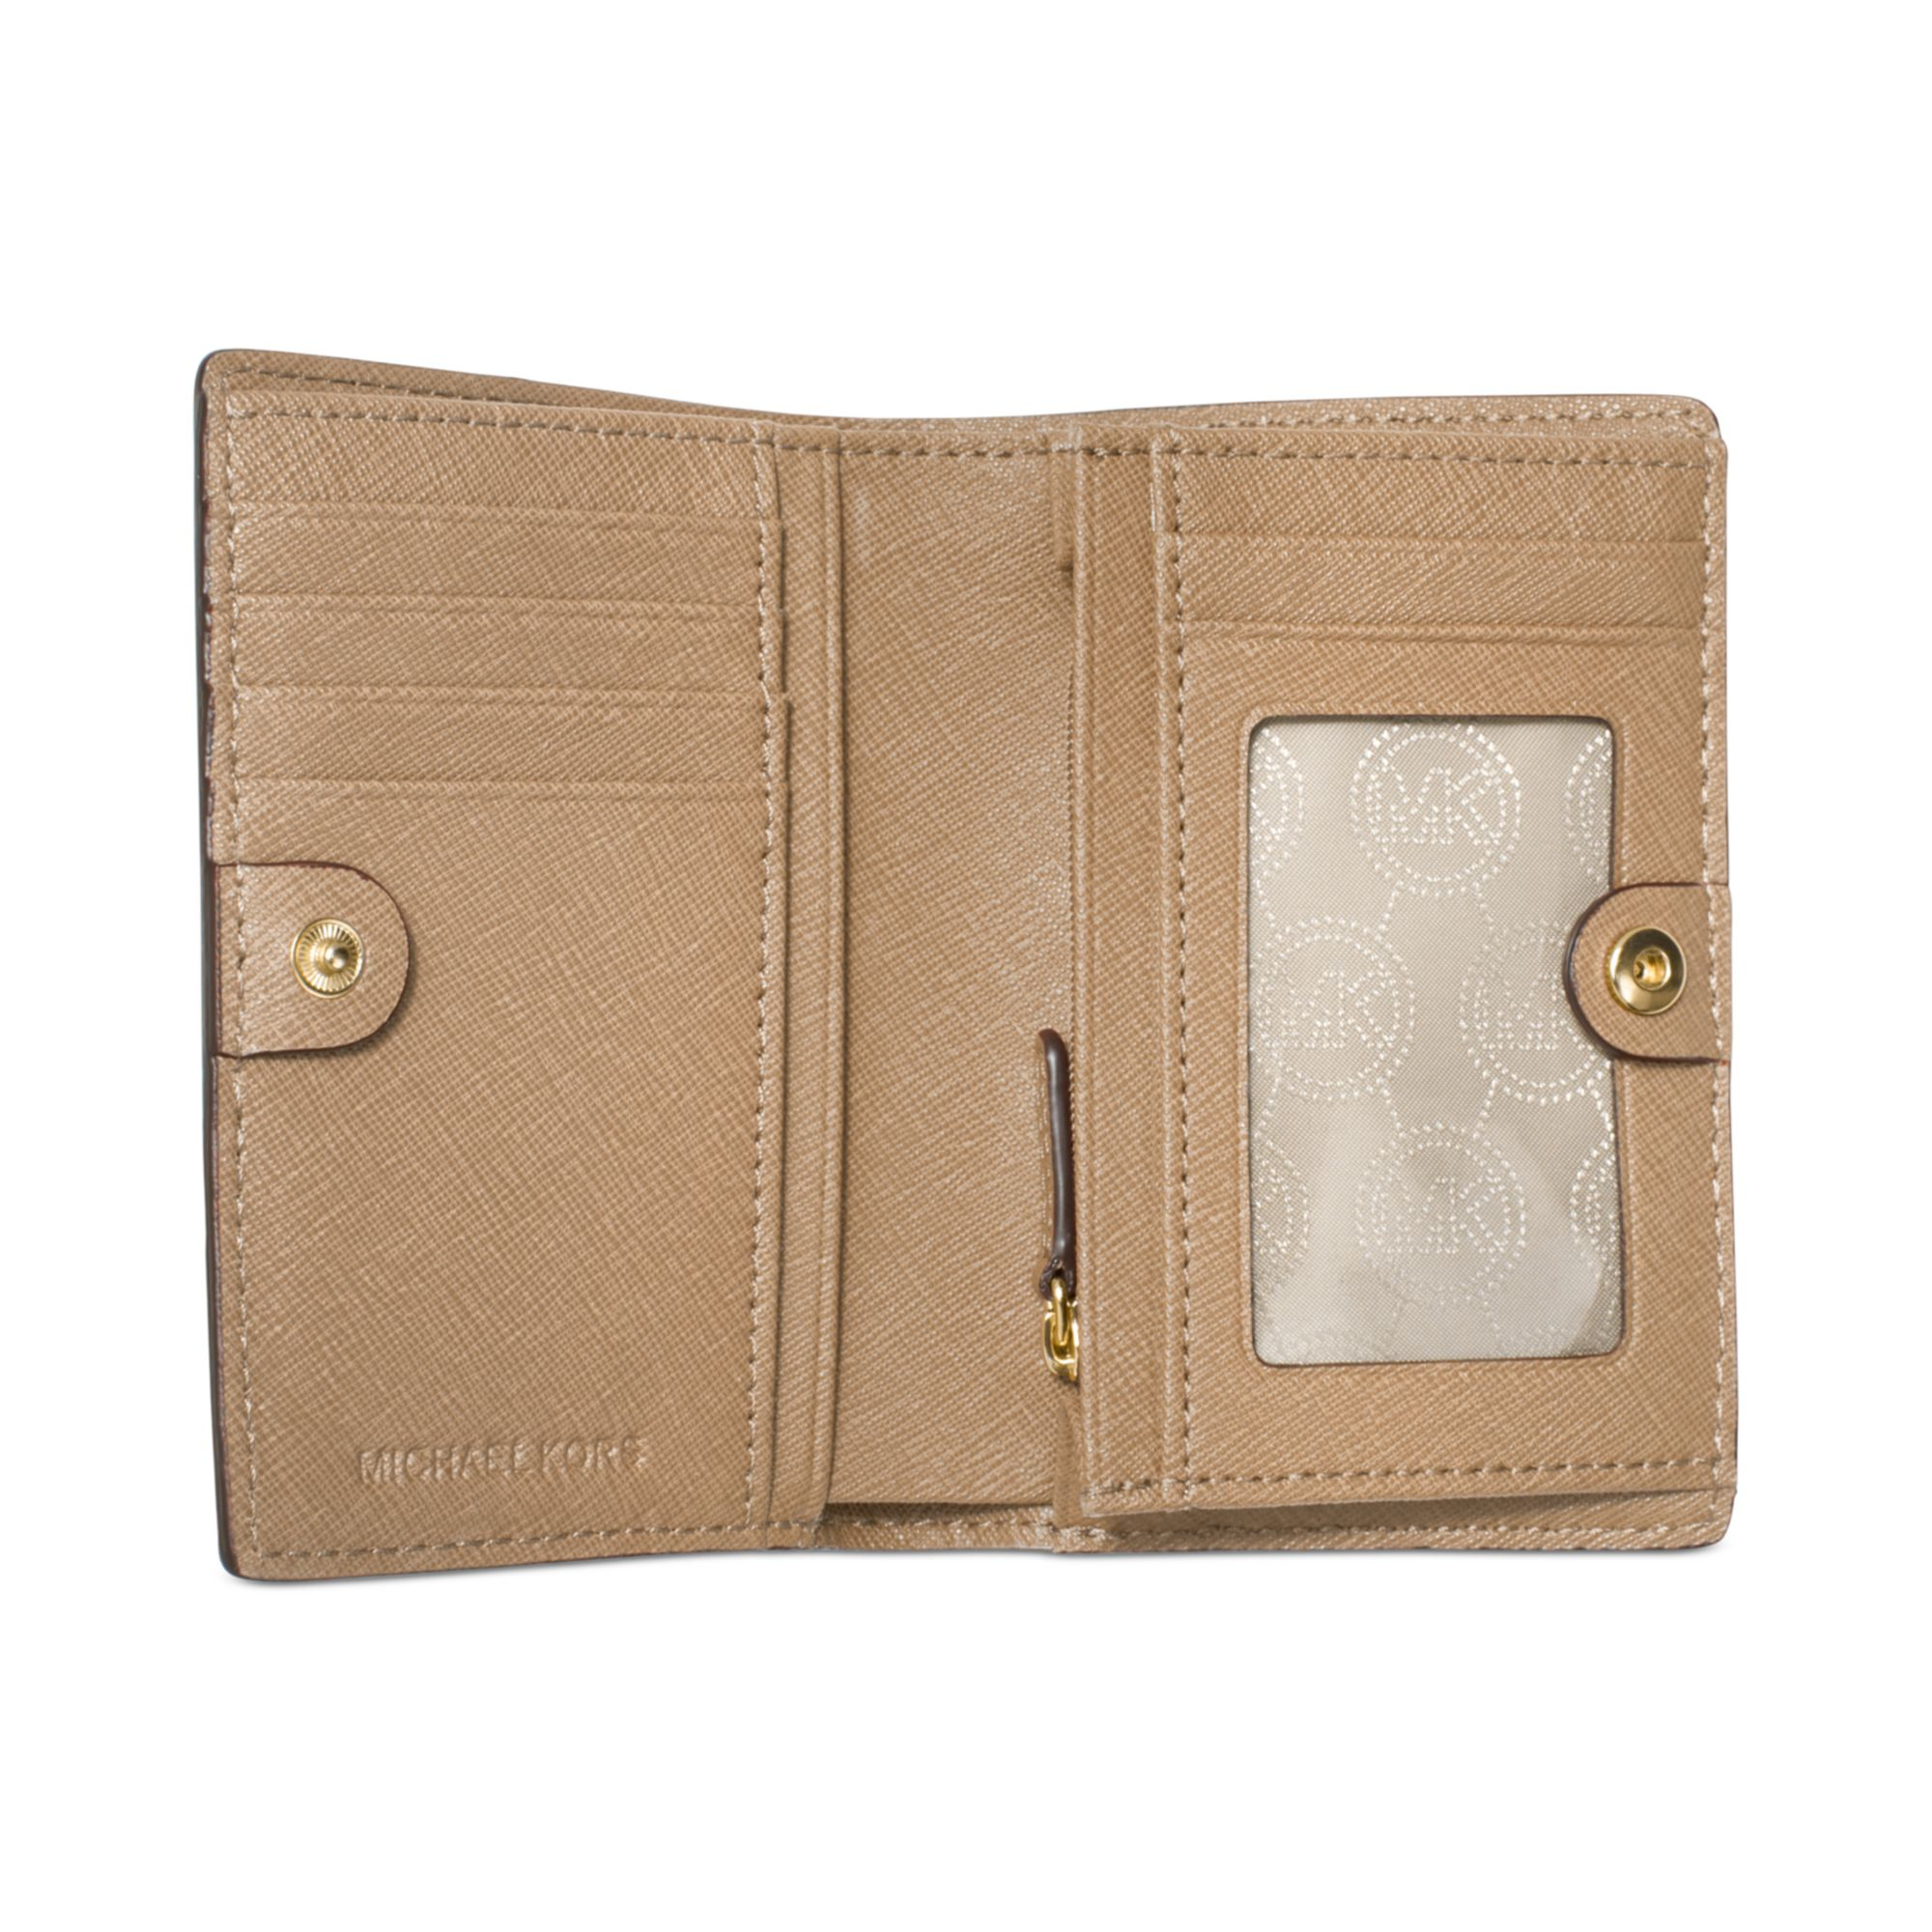 d2f6096b4041 ... ireland lyst michael kors michael jet set travel medium slim wallet in  natural 786dd 5281c ...